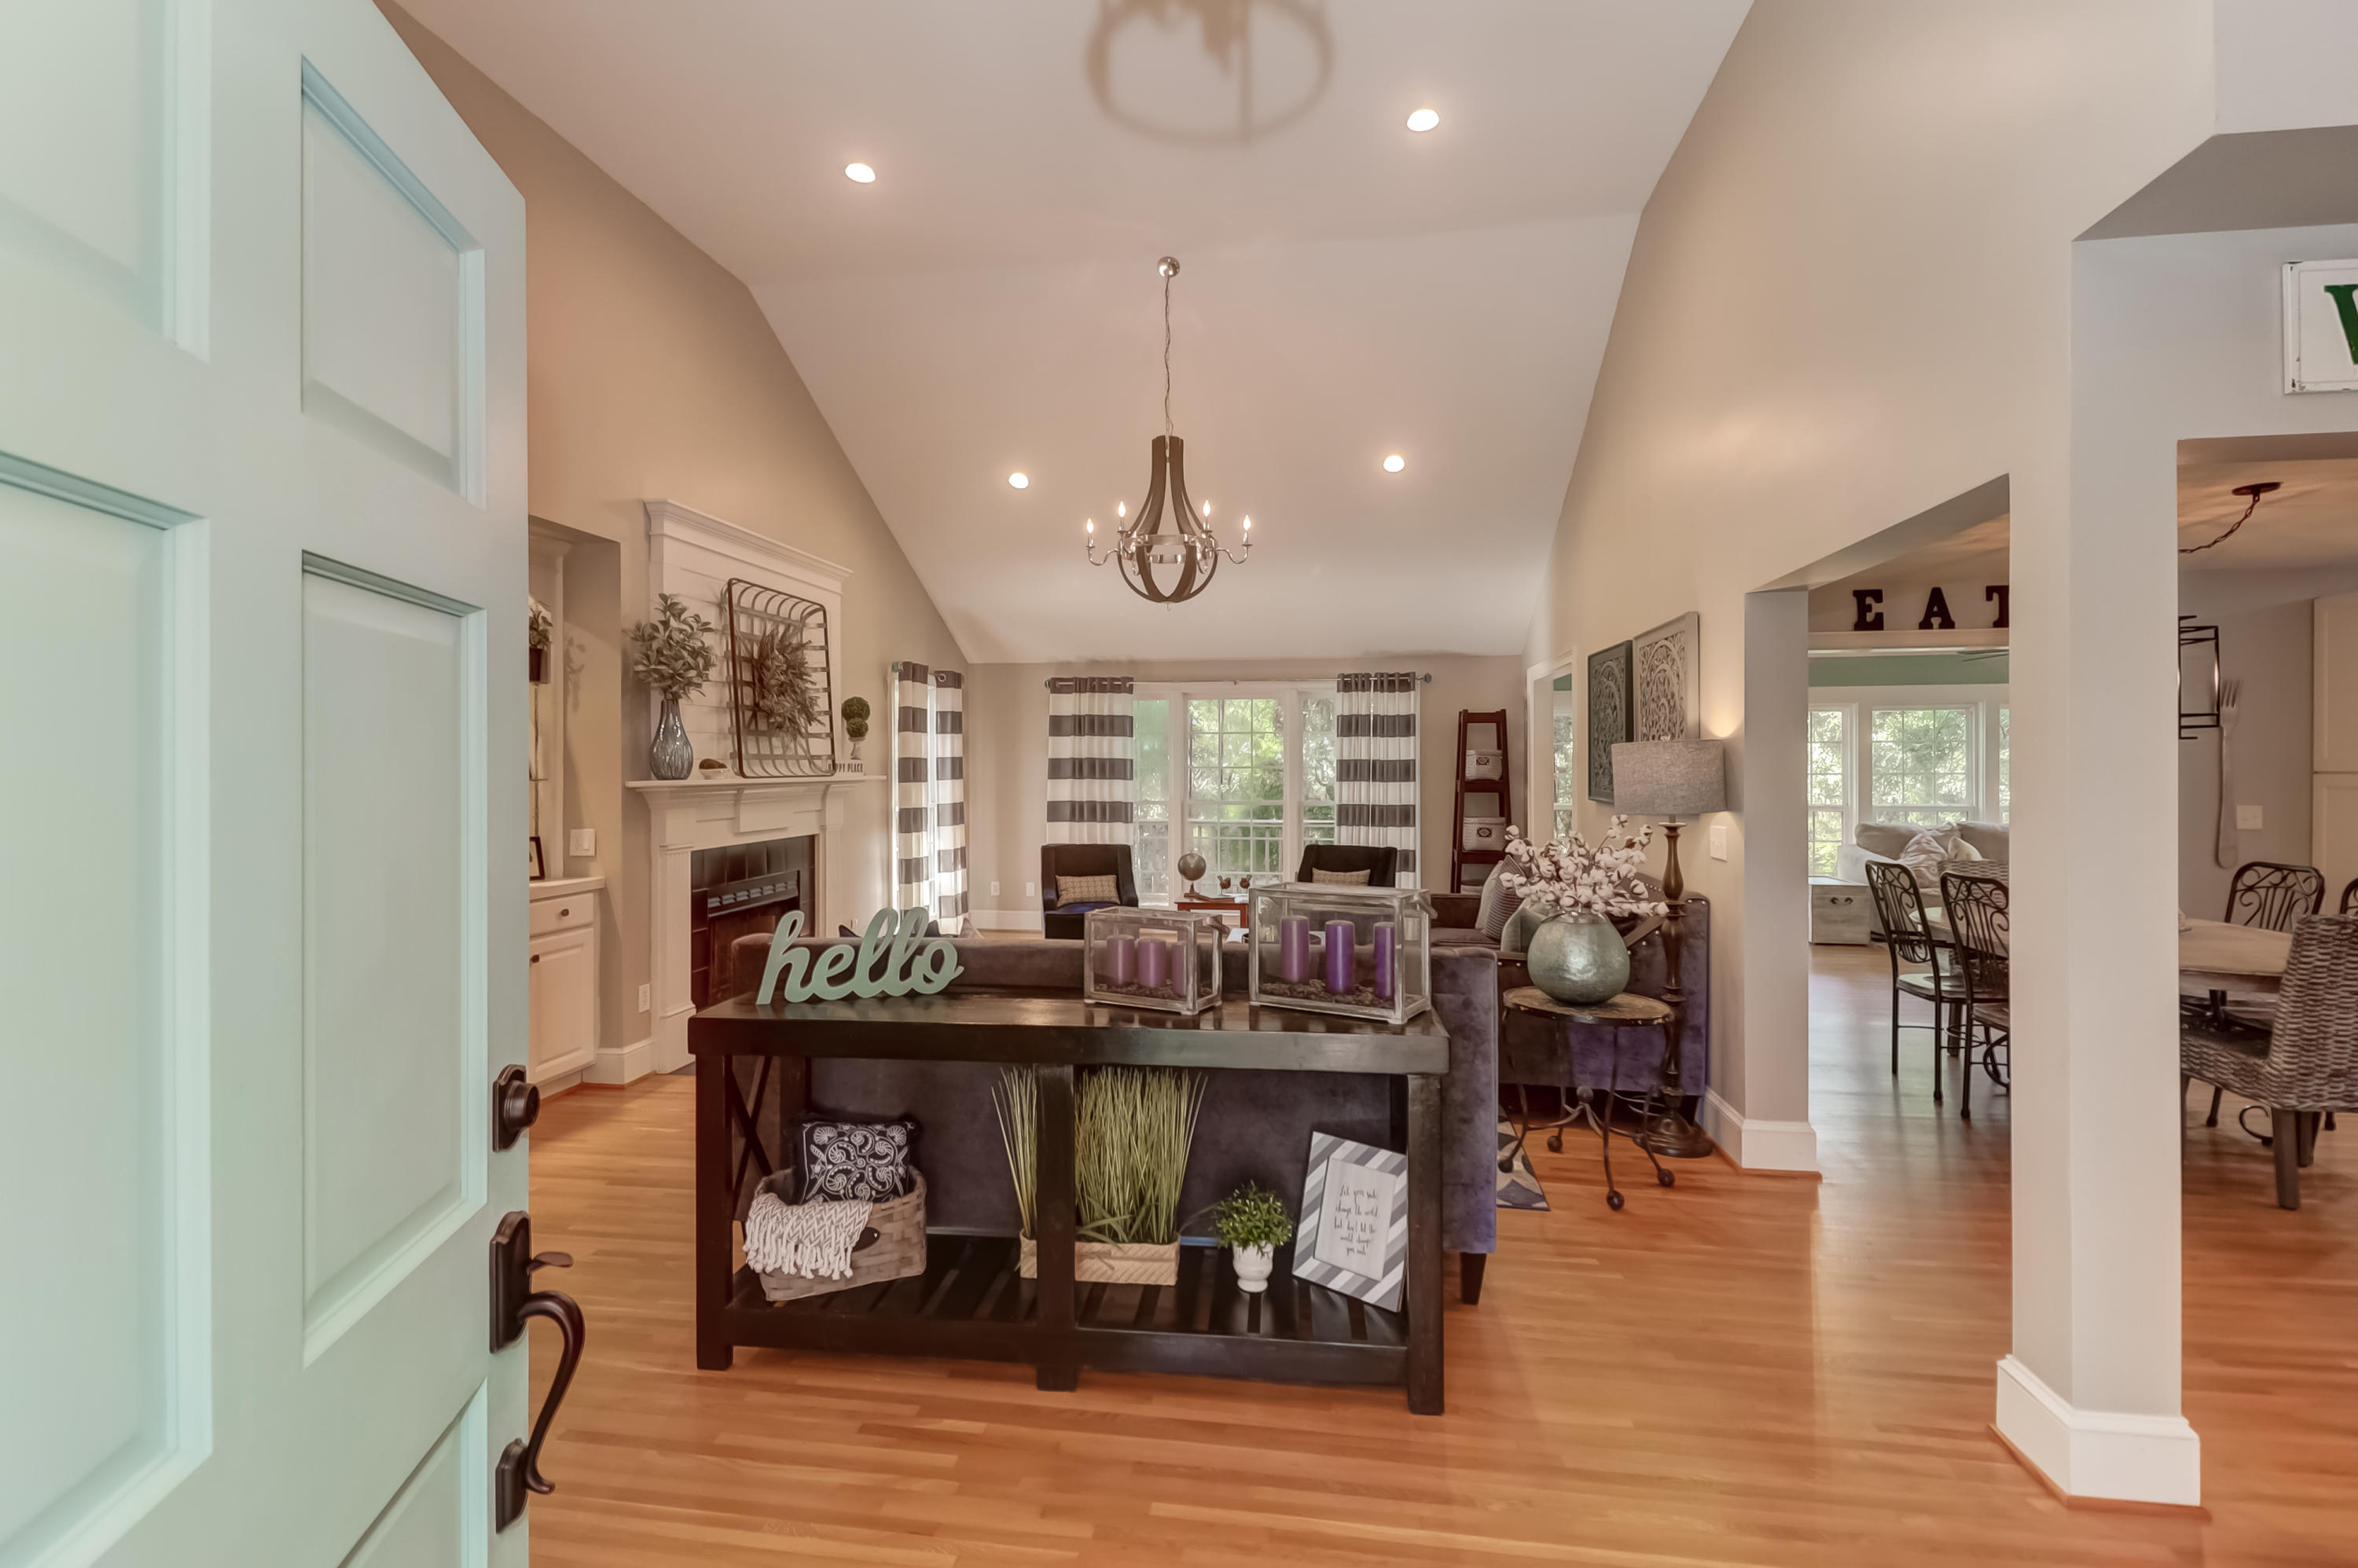 914 Parrot Creek Way Charleston $650,000.00